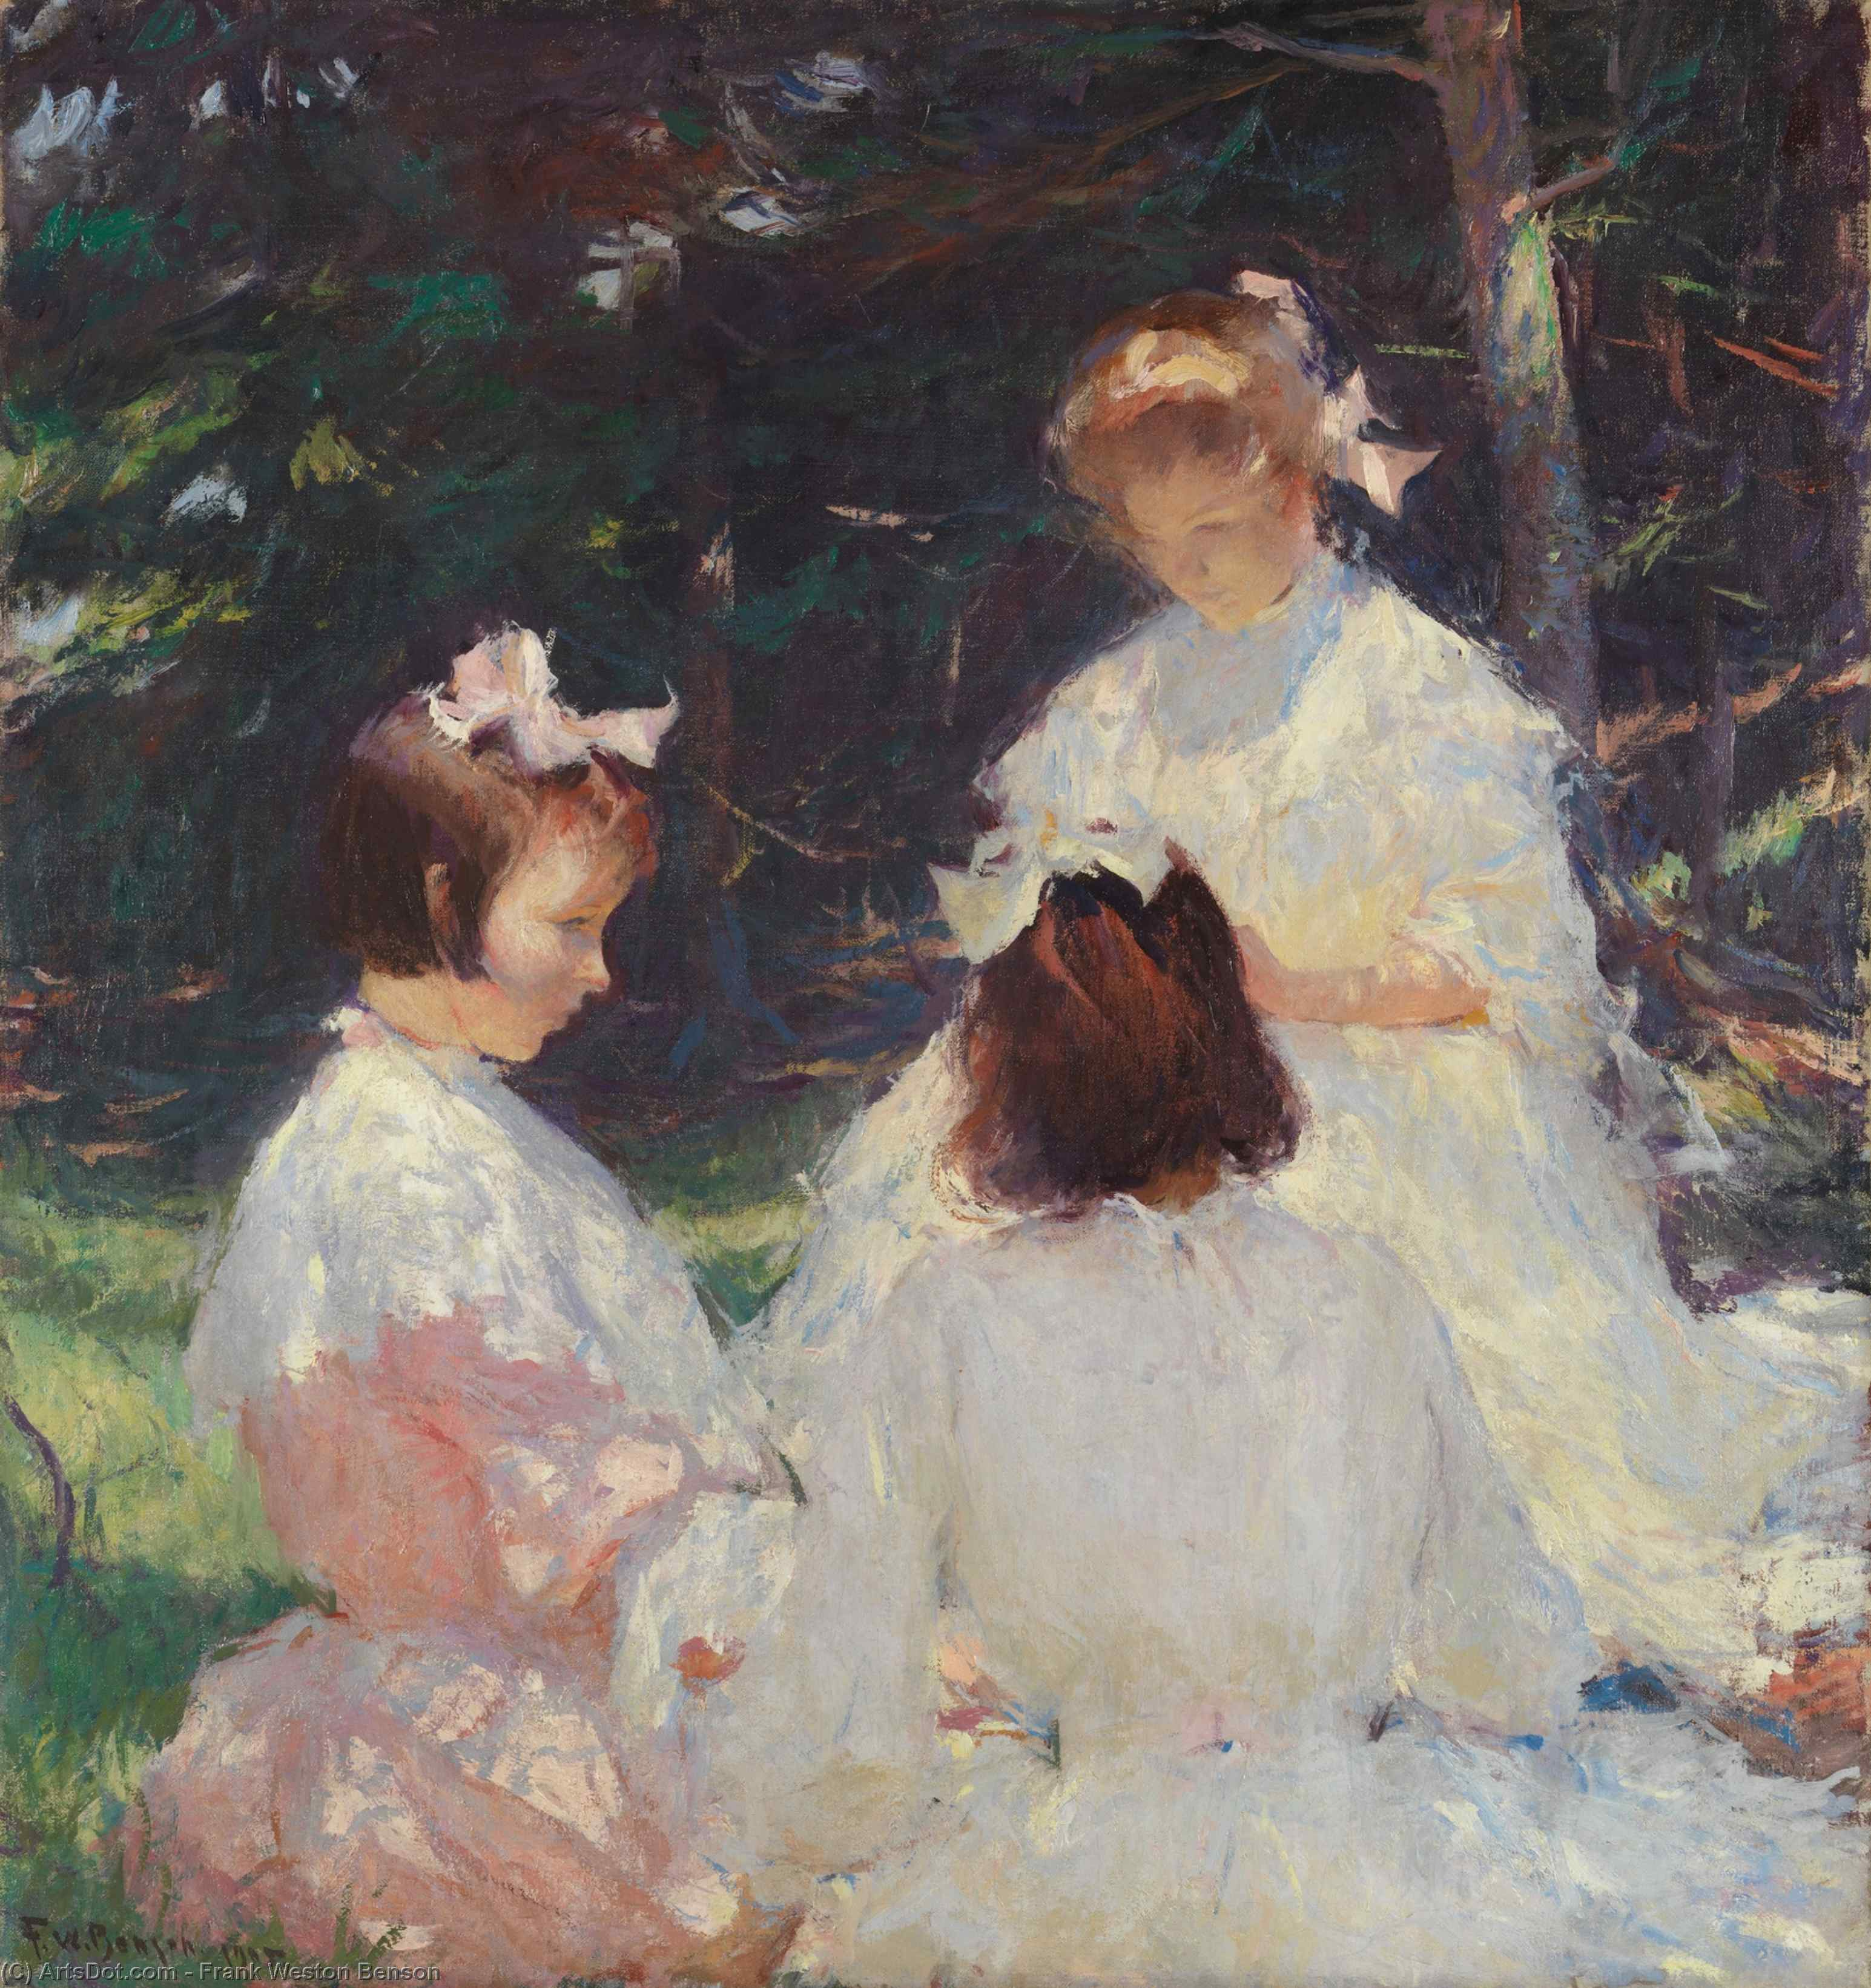 Children in Woods, Oil by Frank Weston Benson (1862-1951, United States)